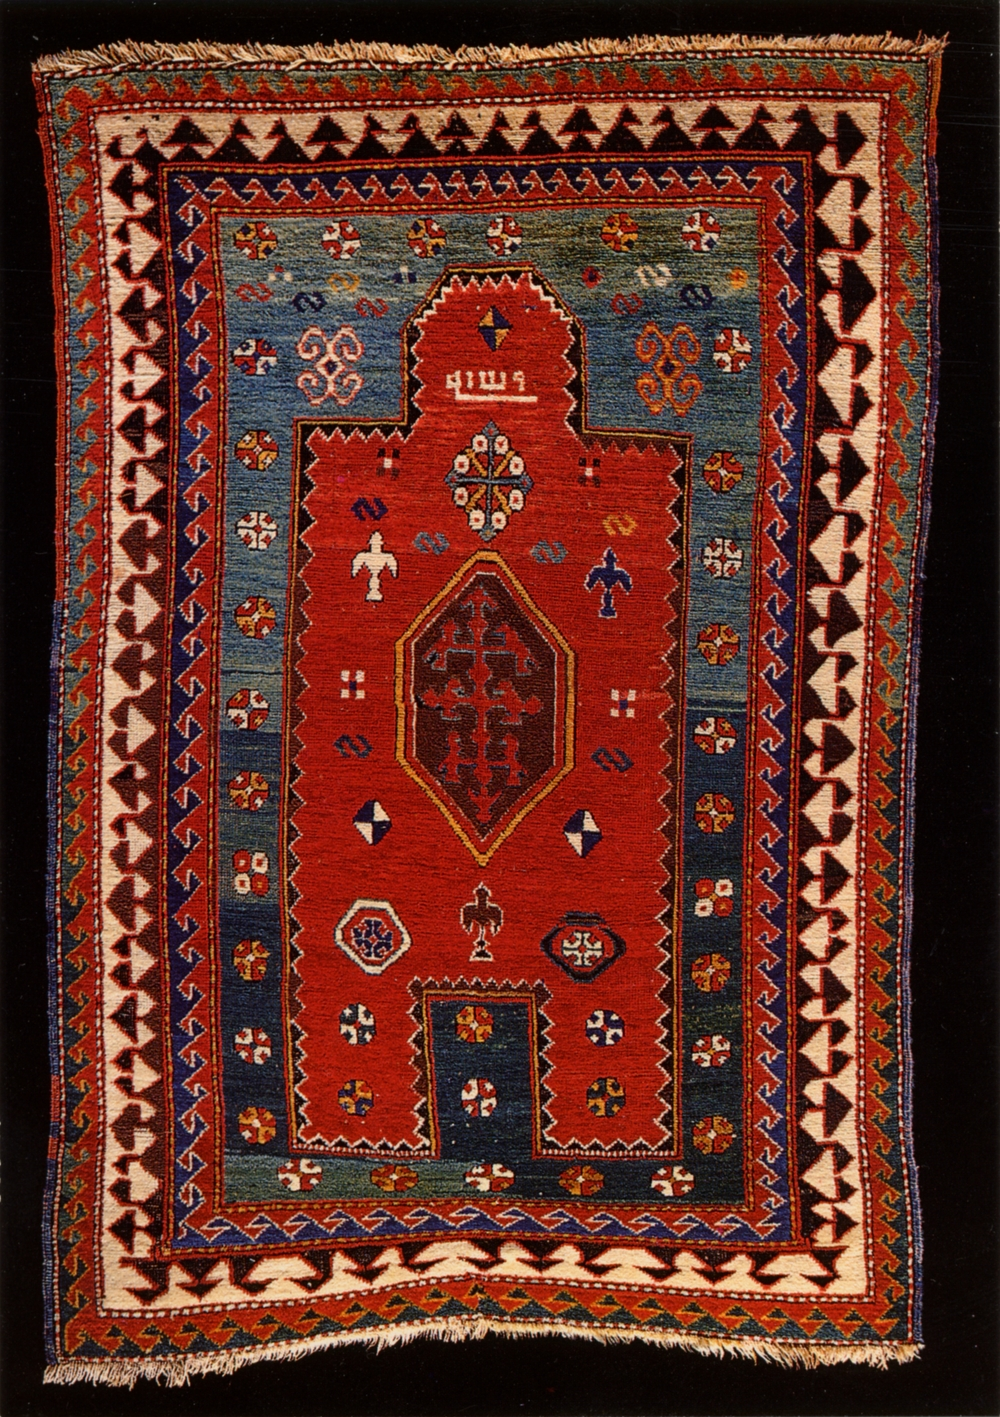 Islamic prayer rug with mihrab